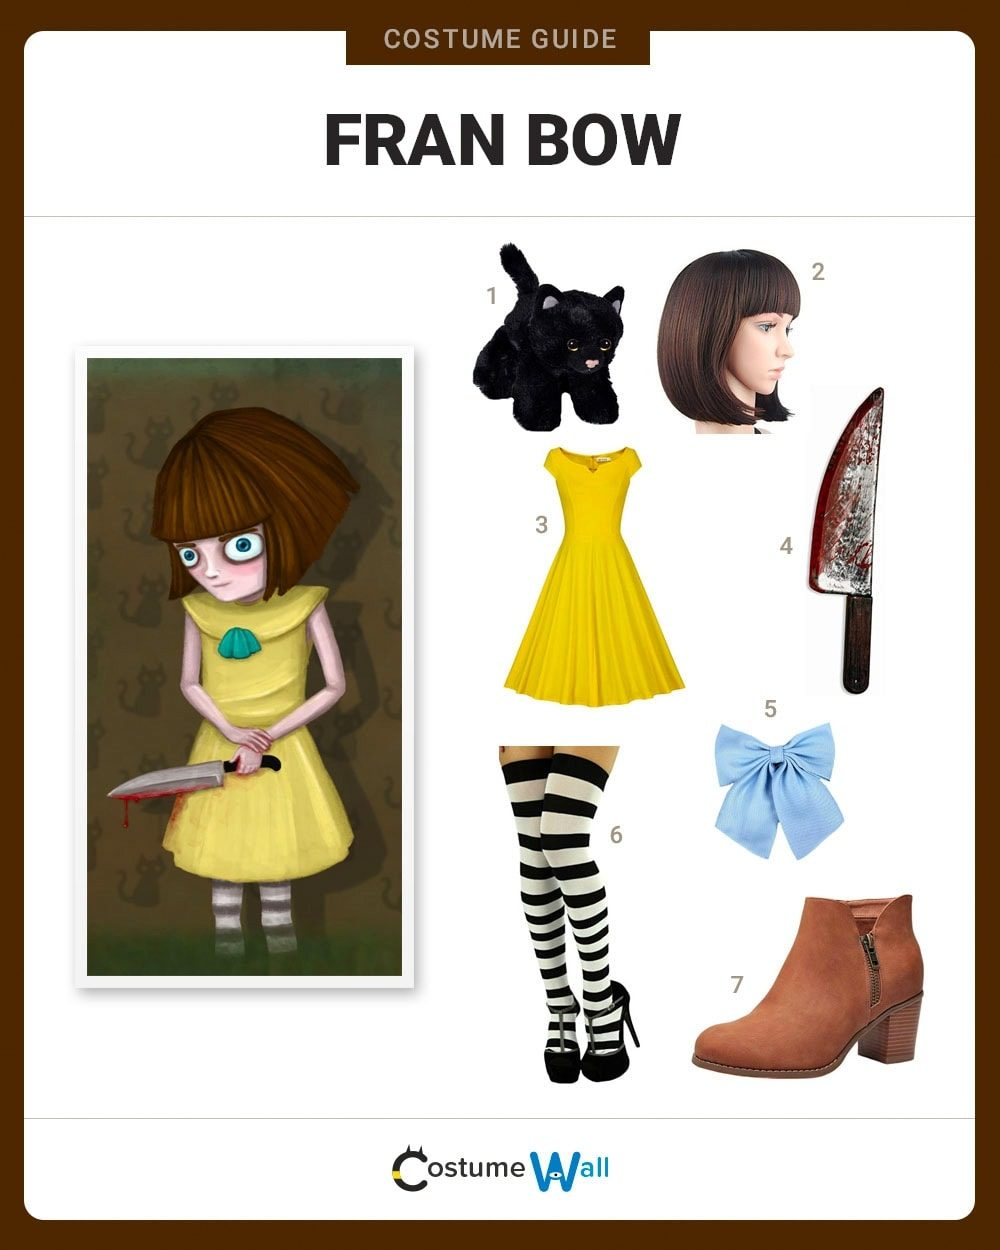 Fran Bow Costume Guide